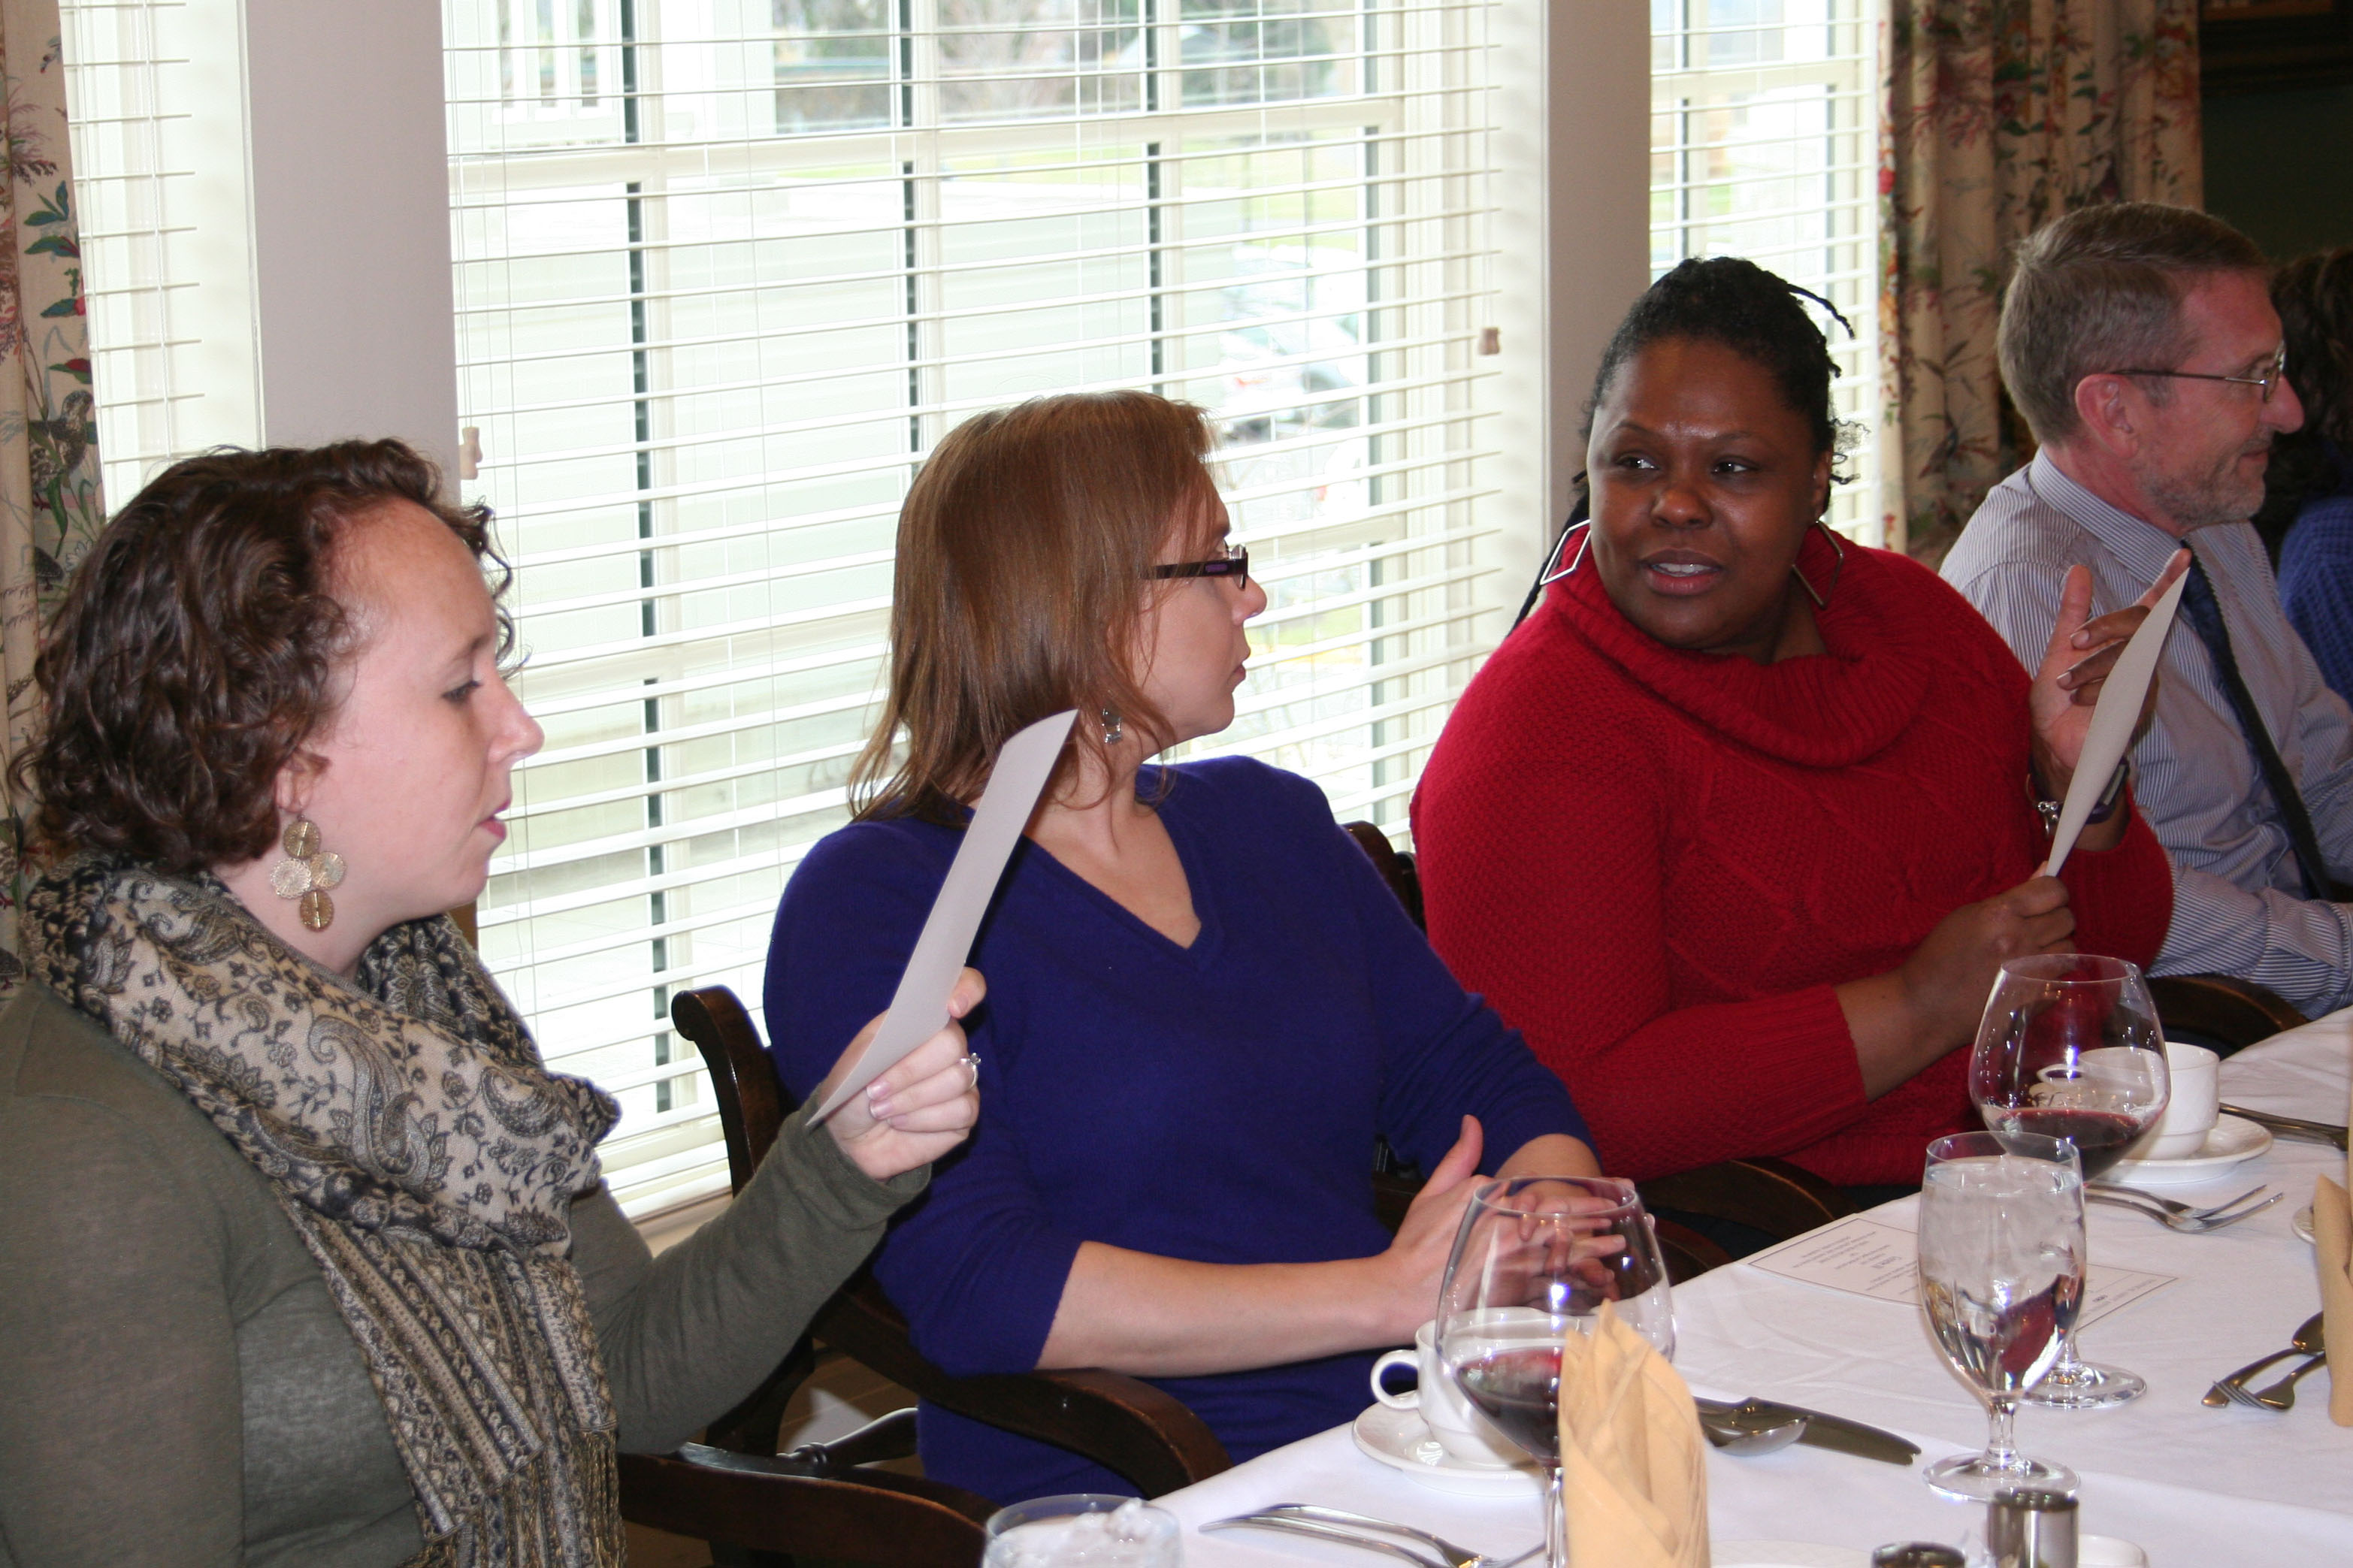 Technical Assent employees talk during a luncheon